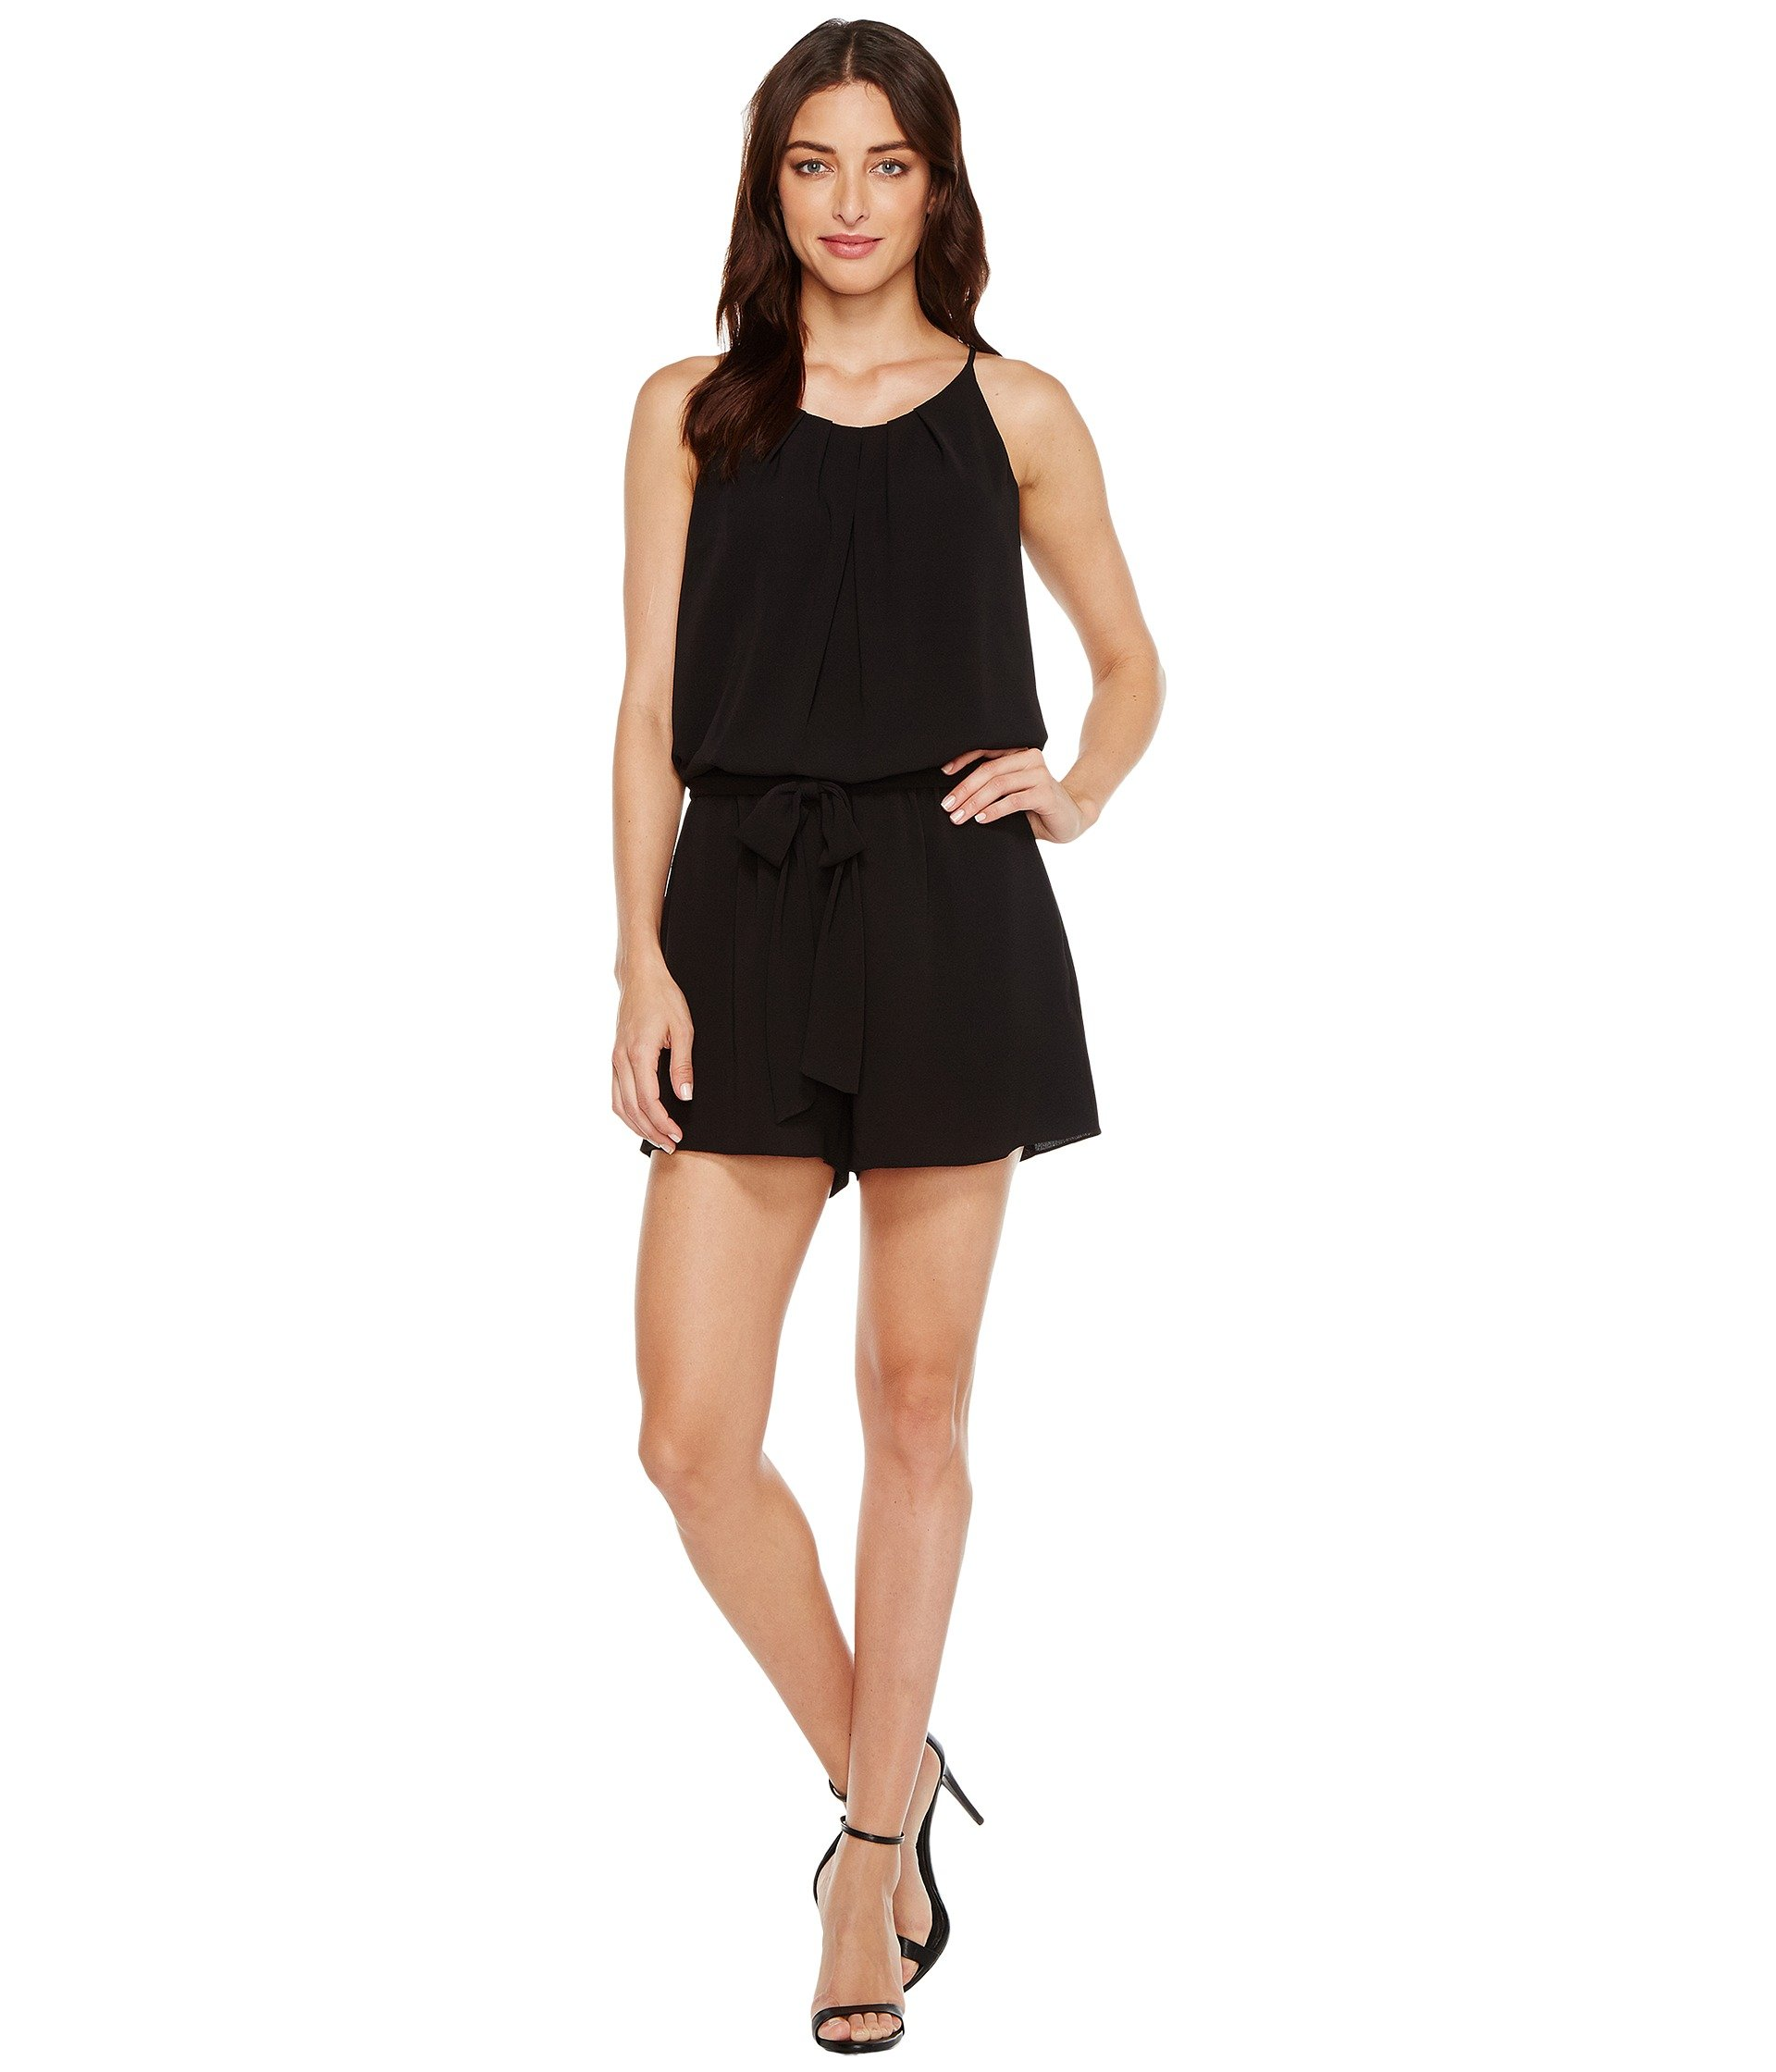 Enterizo para Mujer Vince Camuto Pleat Neck Belted Texture Romper  + Vince Camuto en VeoyCompro.net